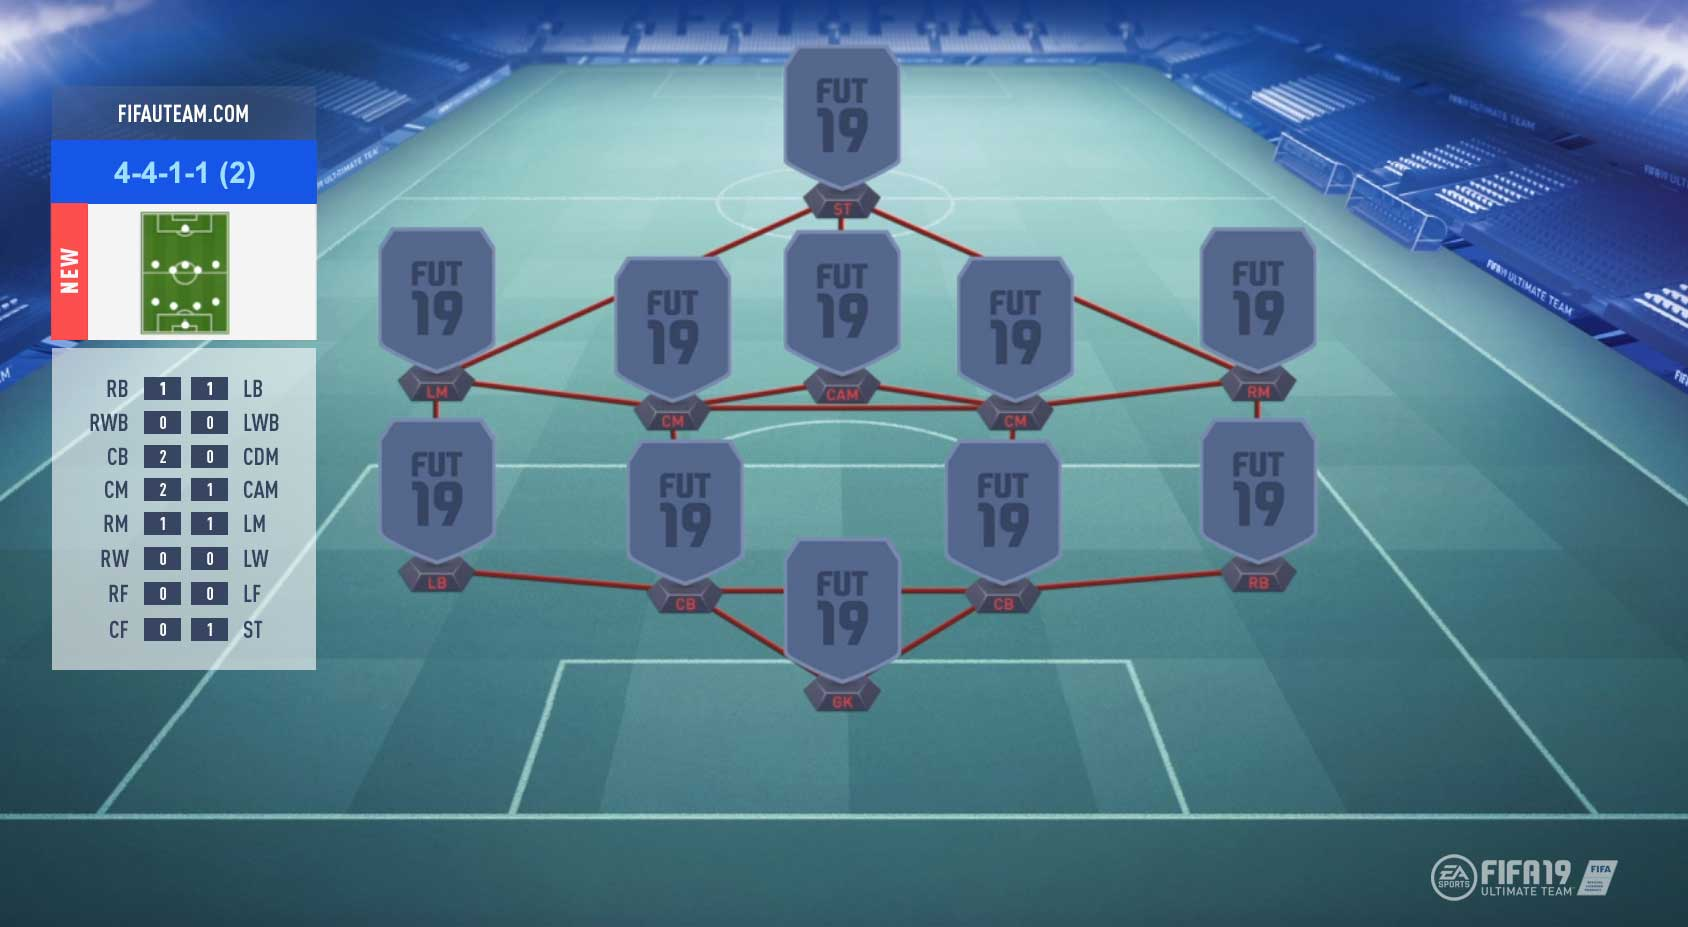 FIFA 19 Formations Guide – 4-4-1-1 (